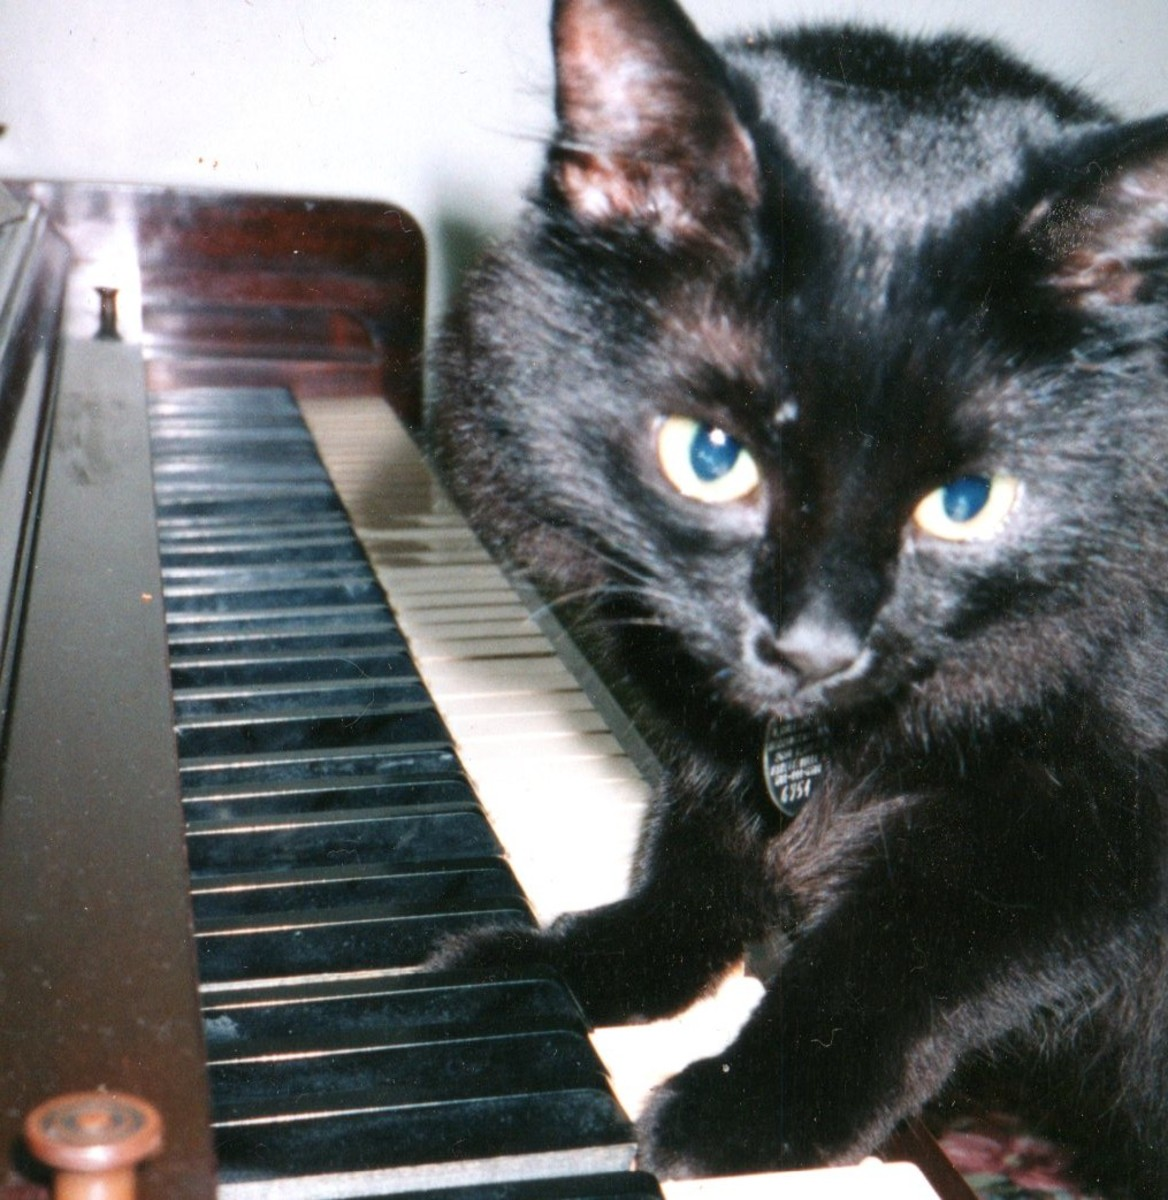 I put treats between the piano keys to set up Blackette for this photo. While she was looking for them, I called her name. She looked toward me to make the perfect picture!